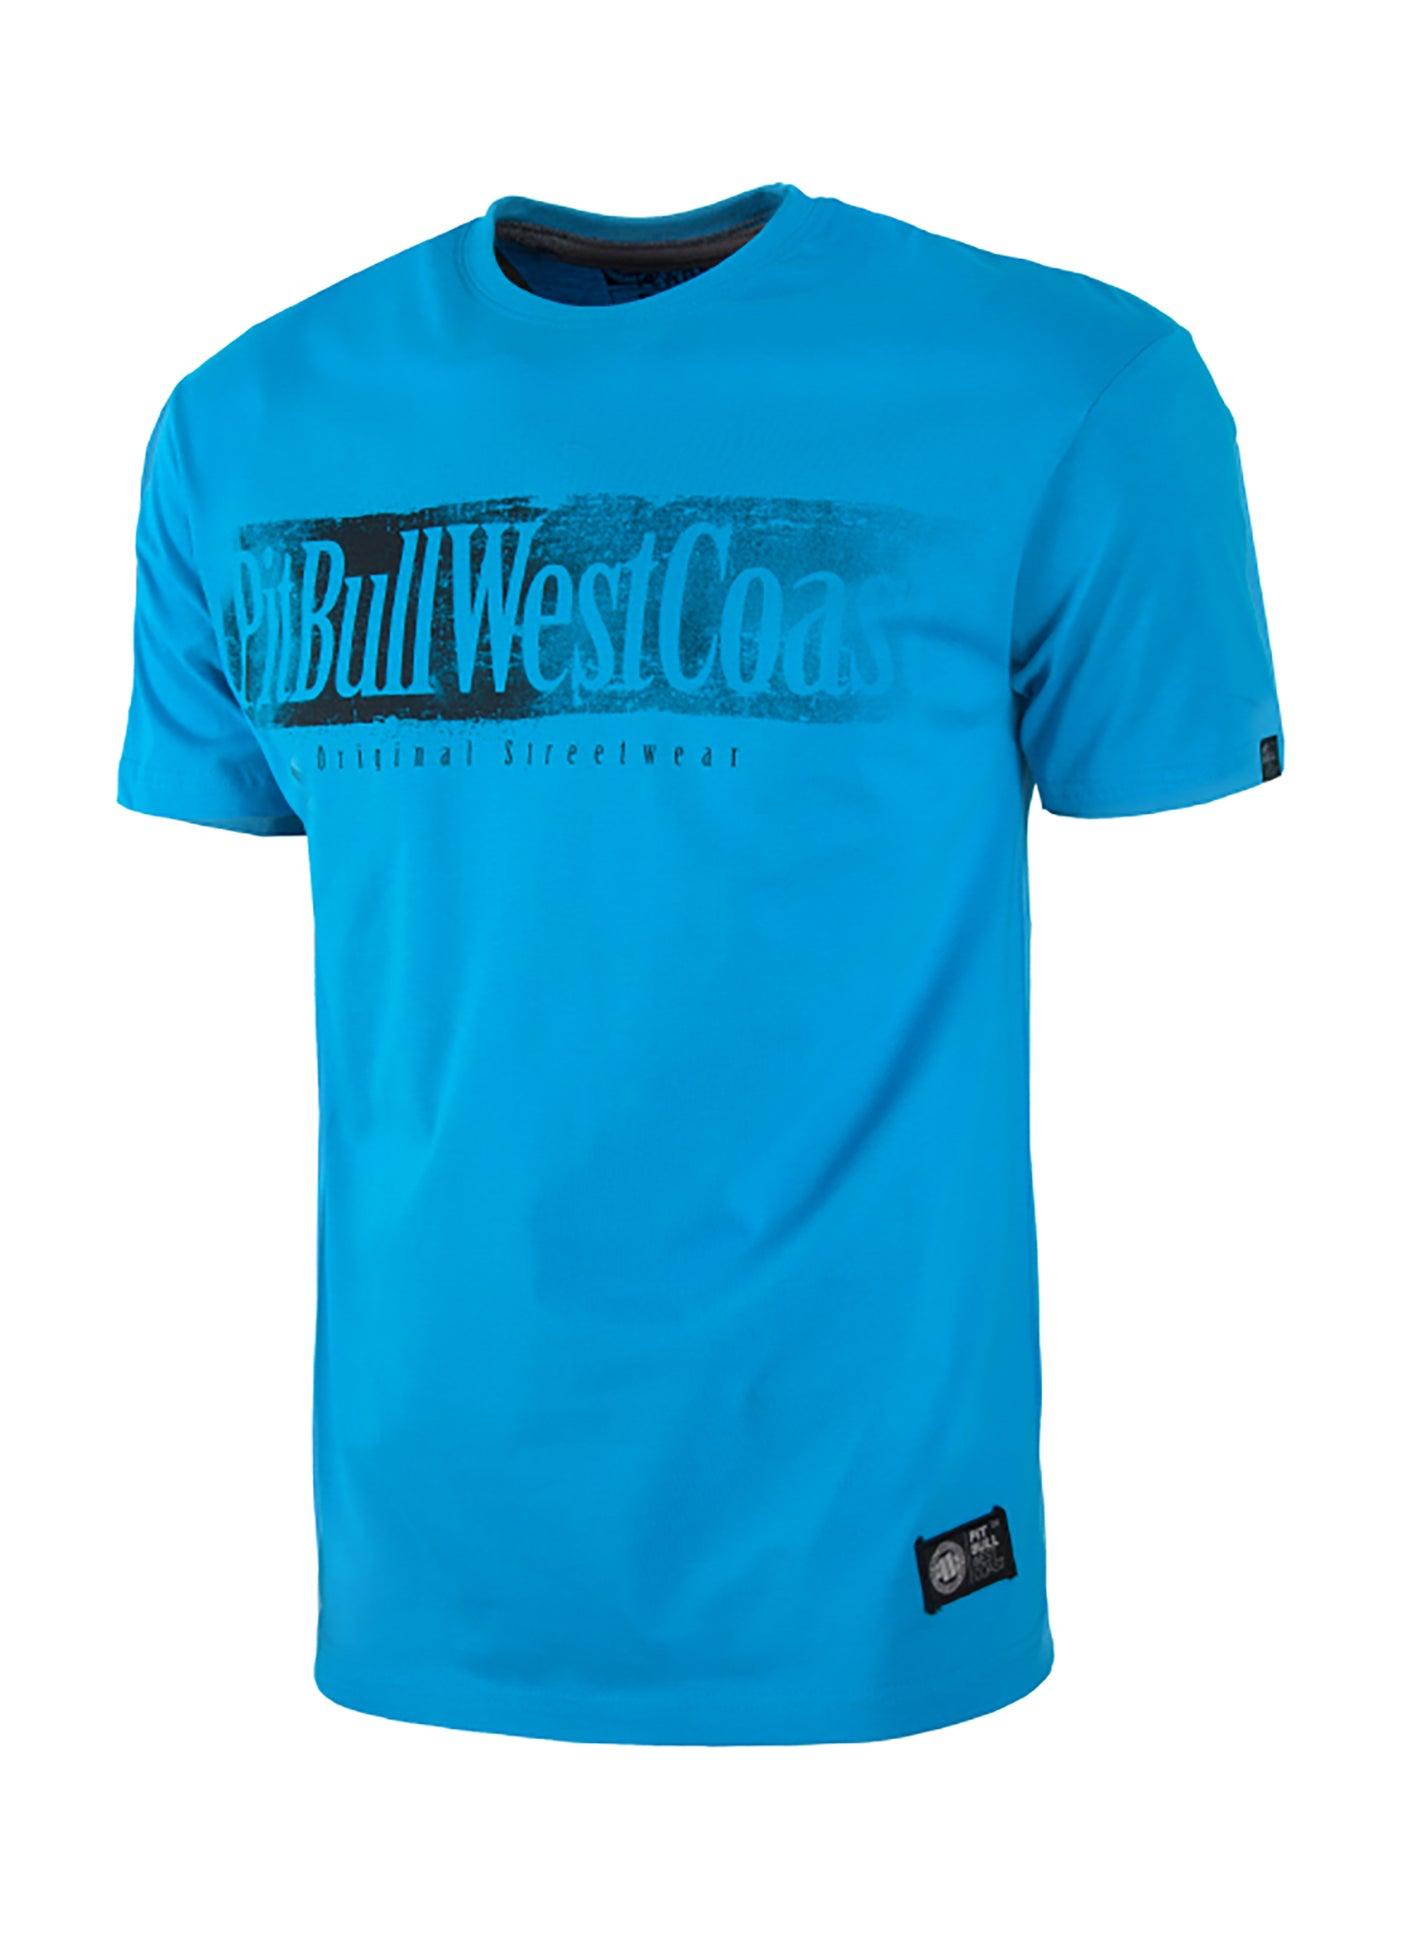 T-shirt Sunlight Surfer Blue - pitbullwestcoast